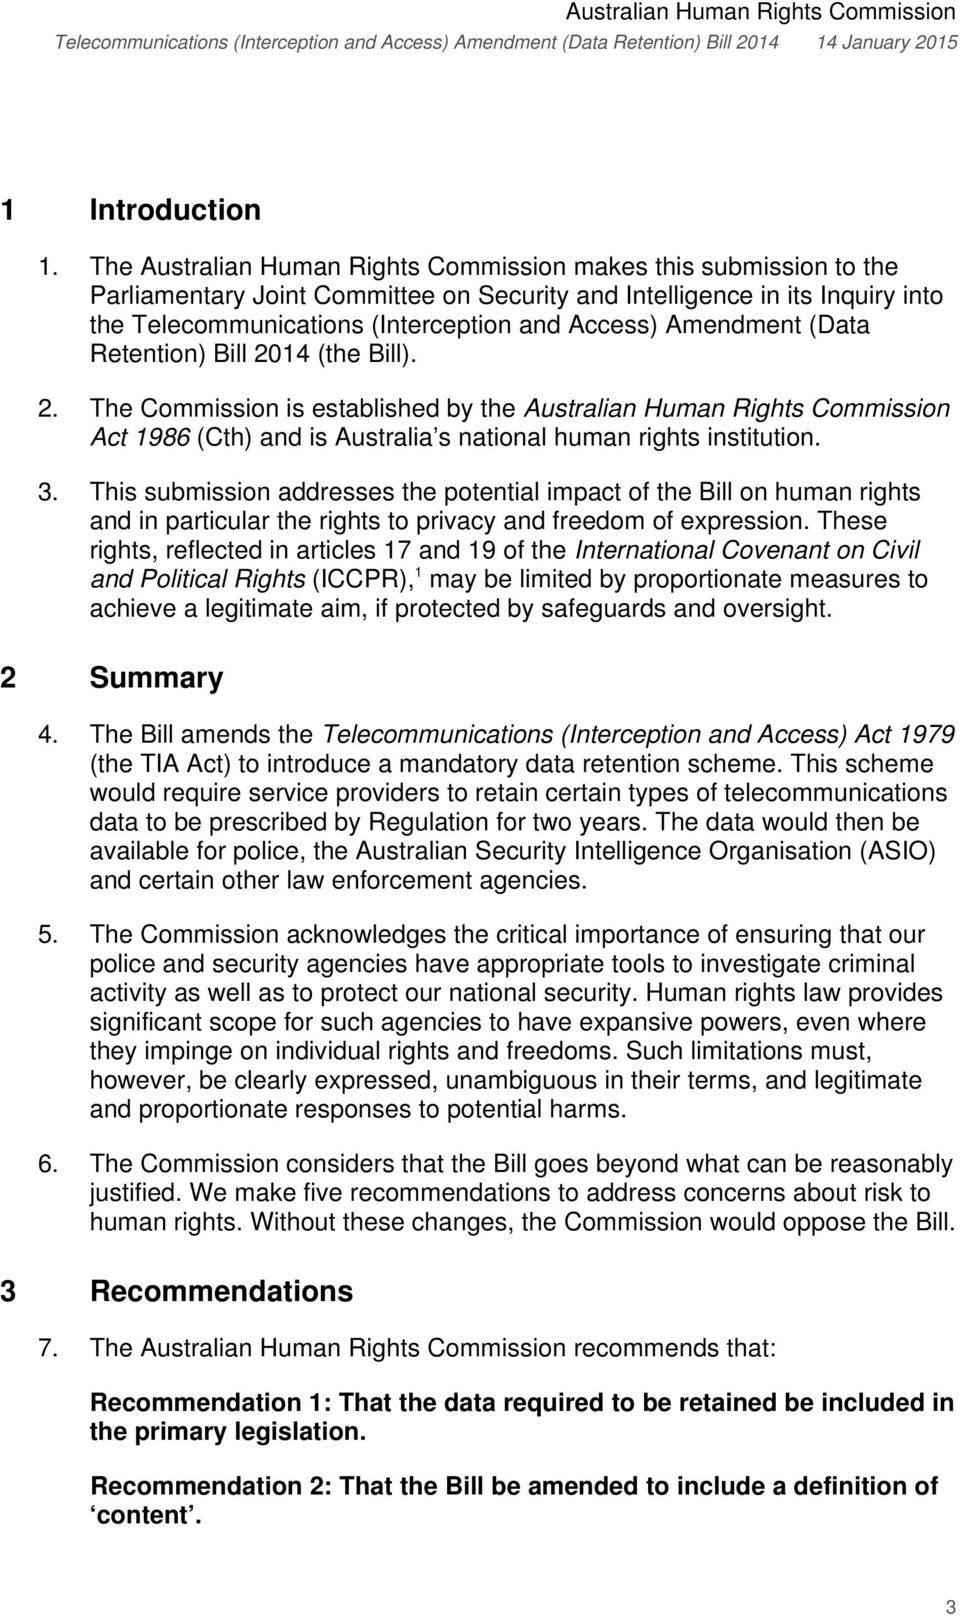 Amendment (Data Retention) Bill 2014 (the Bill). 2. The Commission is established by the Australian Human Rights Commission Act 1986 (Cth) and is Australia s national human rights institution. 3.